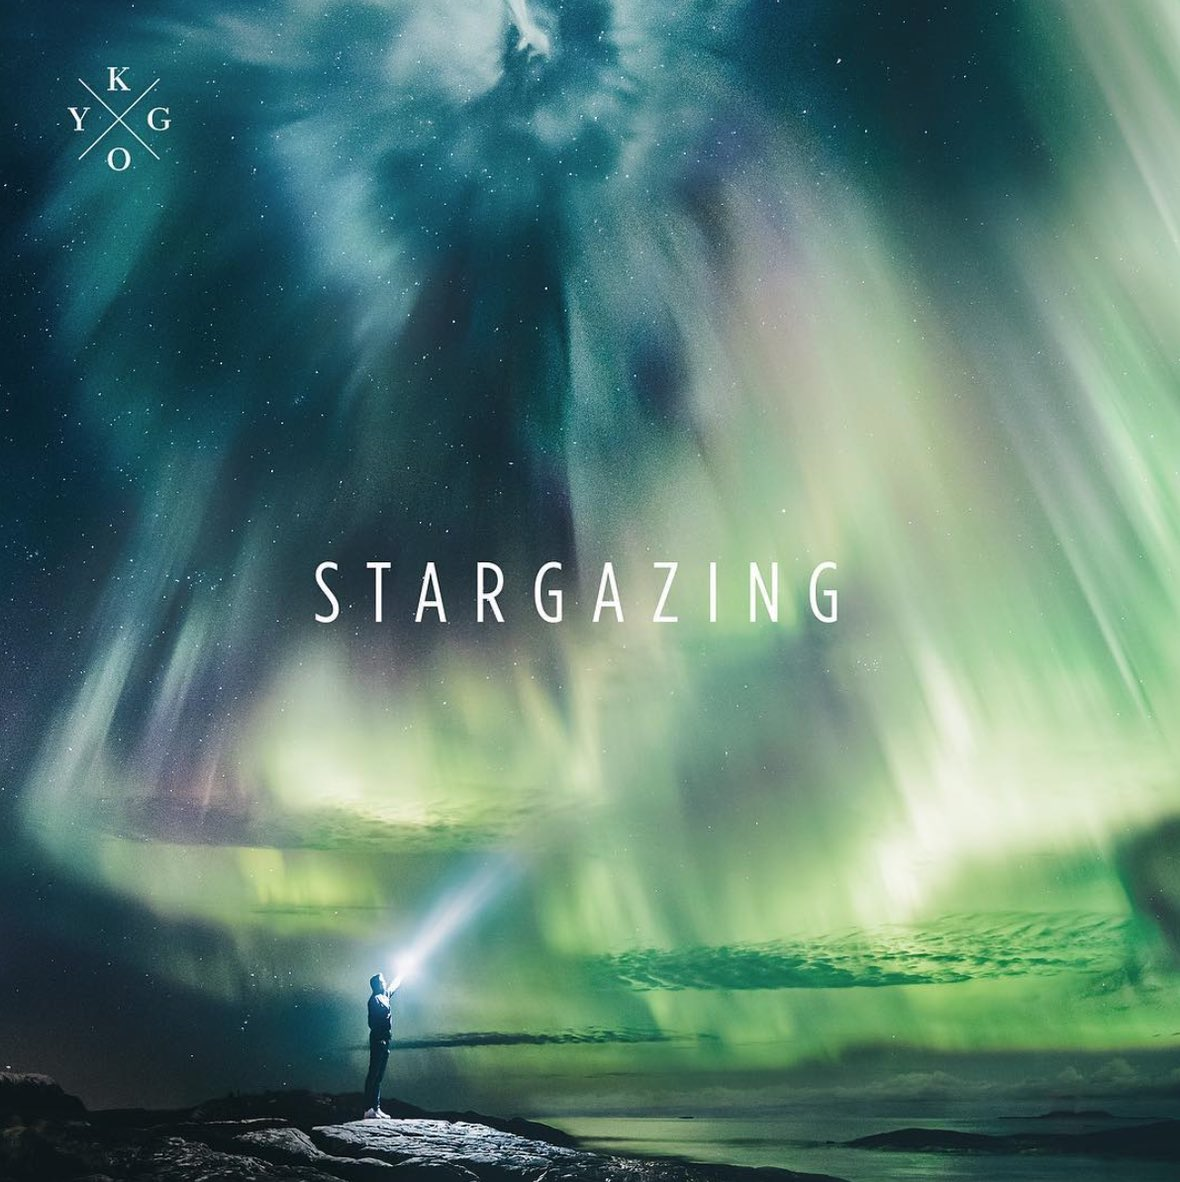 Big congrats to @justin_jesso for co-writing and featuring on the new @kygomusic single! #stargazing https://t.co/szFTk5csuO